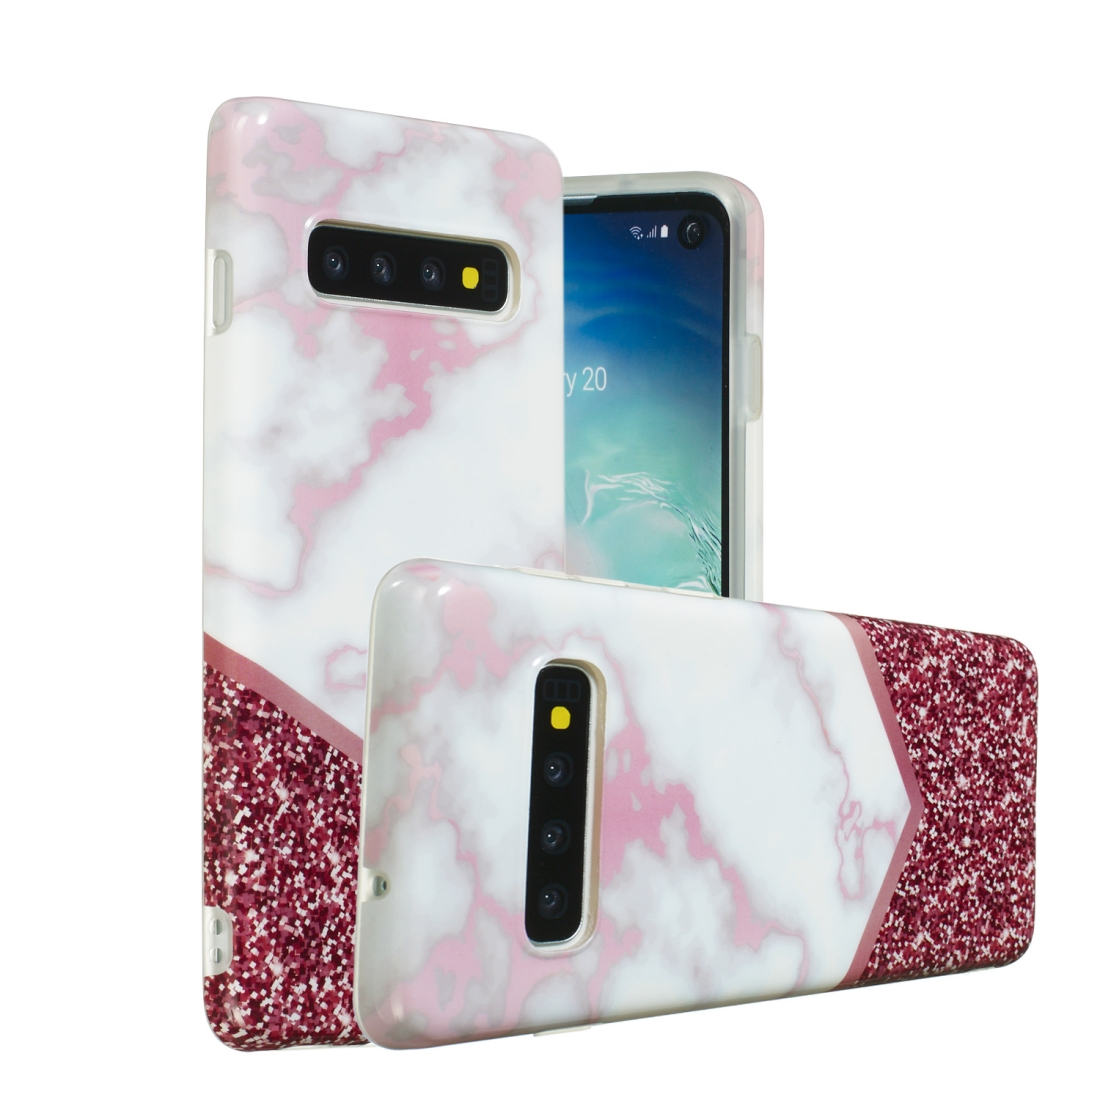 TPU Protective Case For Galaxy S10 (Rose Flash Marble)